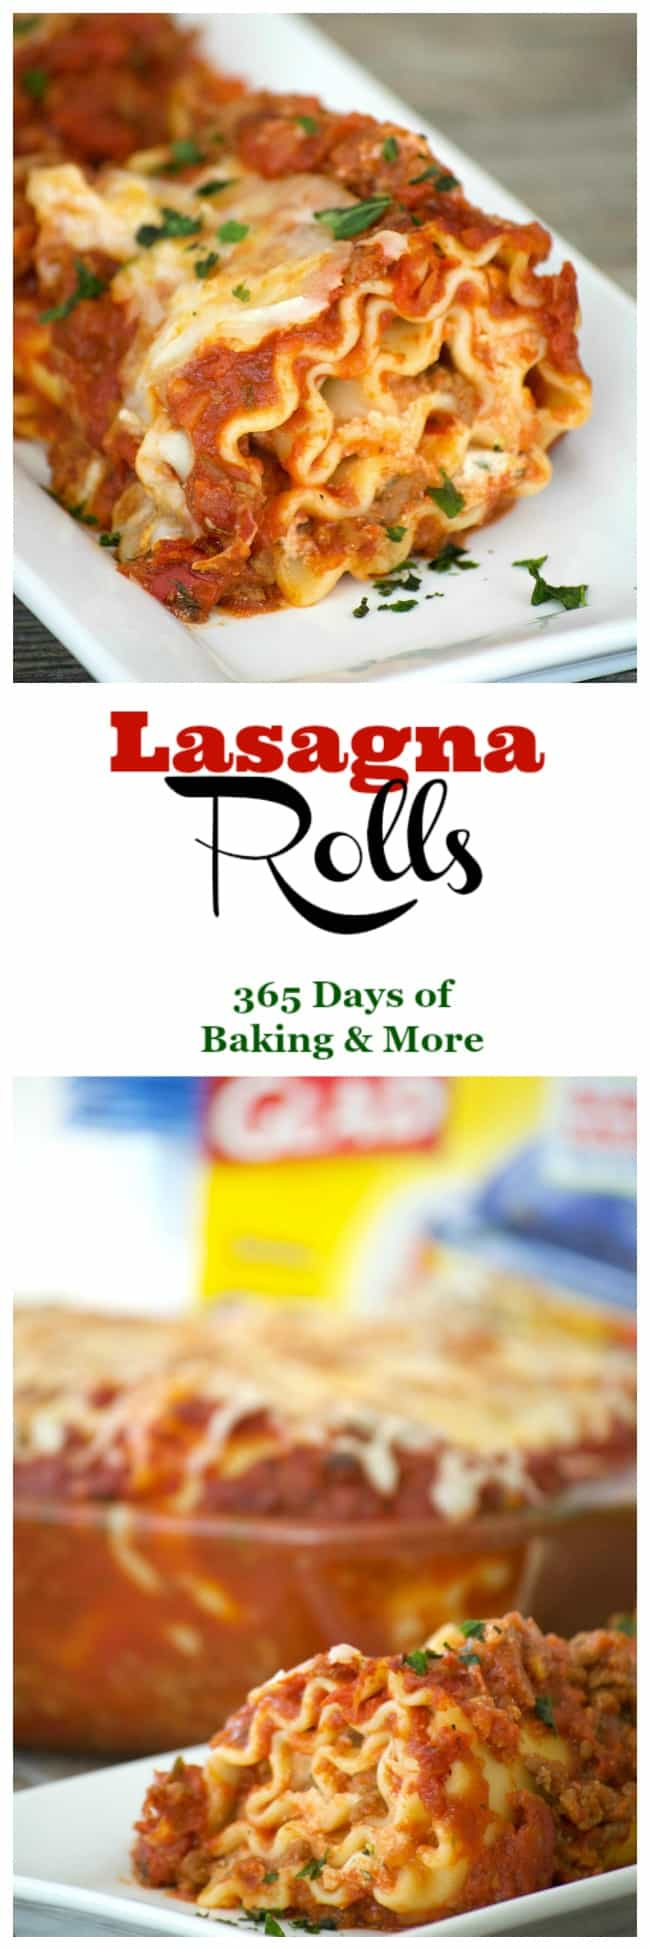 Cheese filled lasagna rolls topped with a flavorful meat sauce - a meal you can't help but share.Share them for your Glad to Give meal to see the smiles.